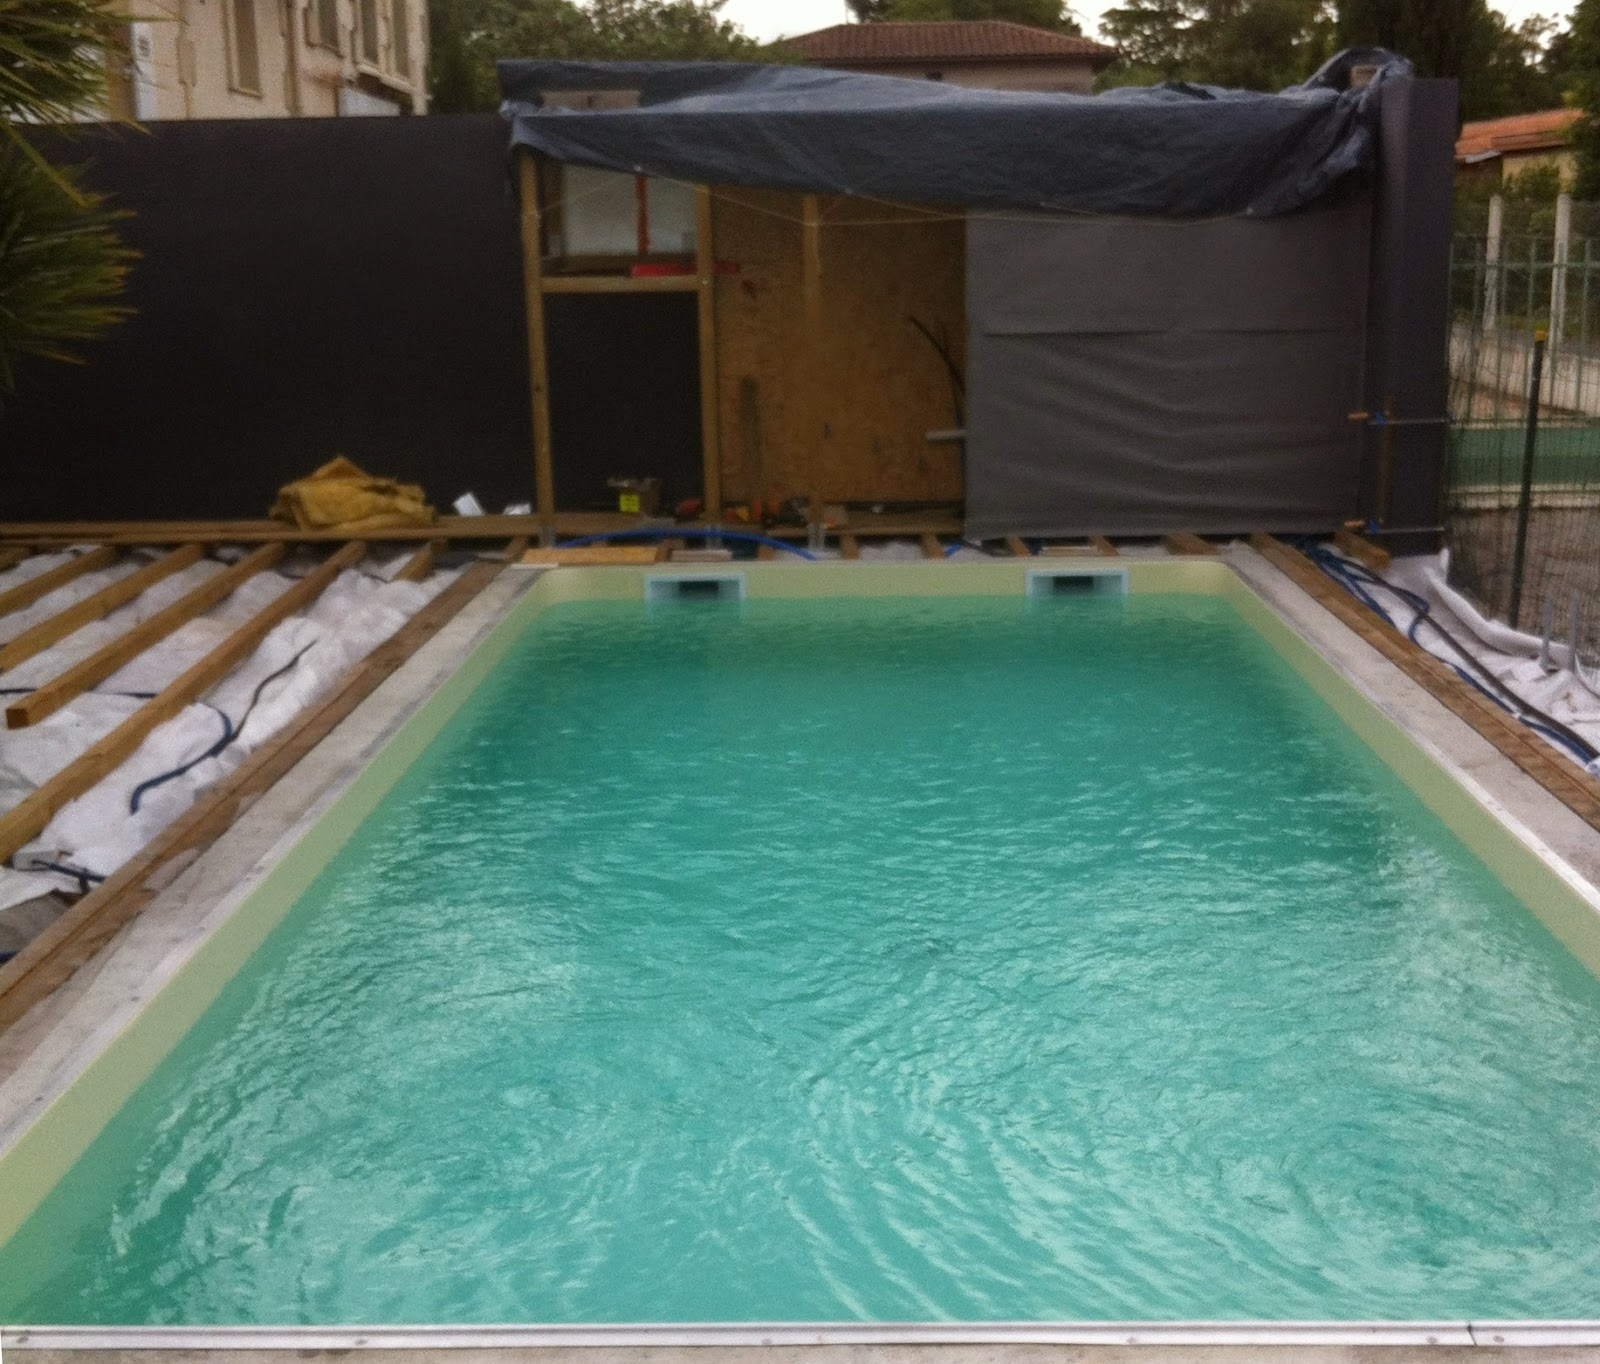 Projet tapes de construction d 39 une piscine en gironde - Autoconstruction piscine ...